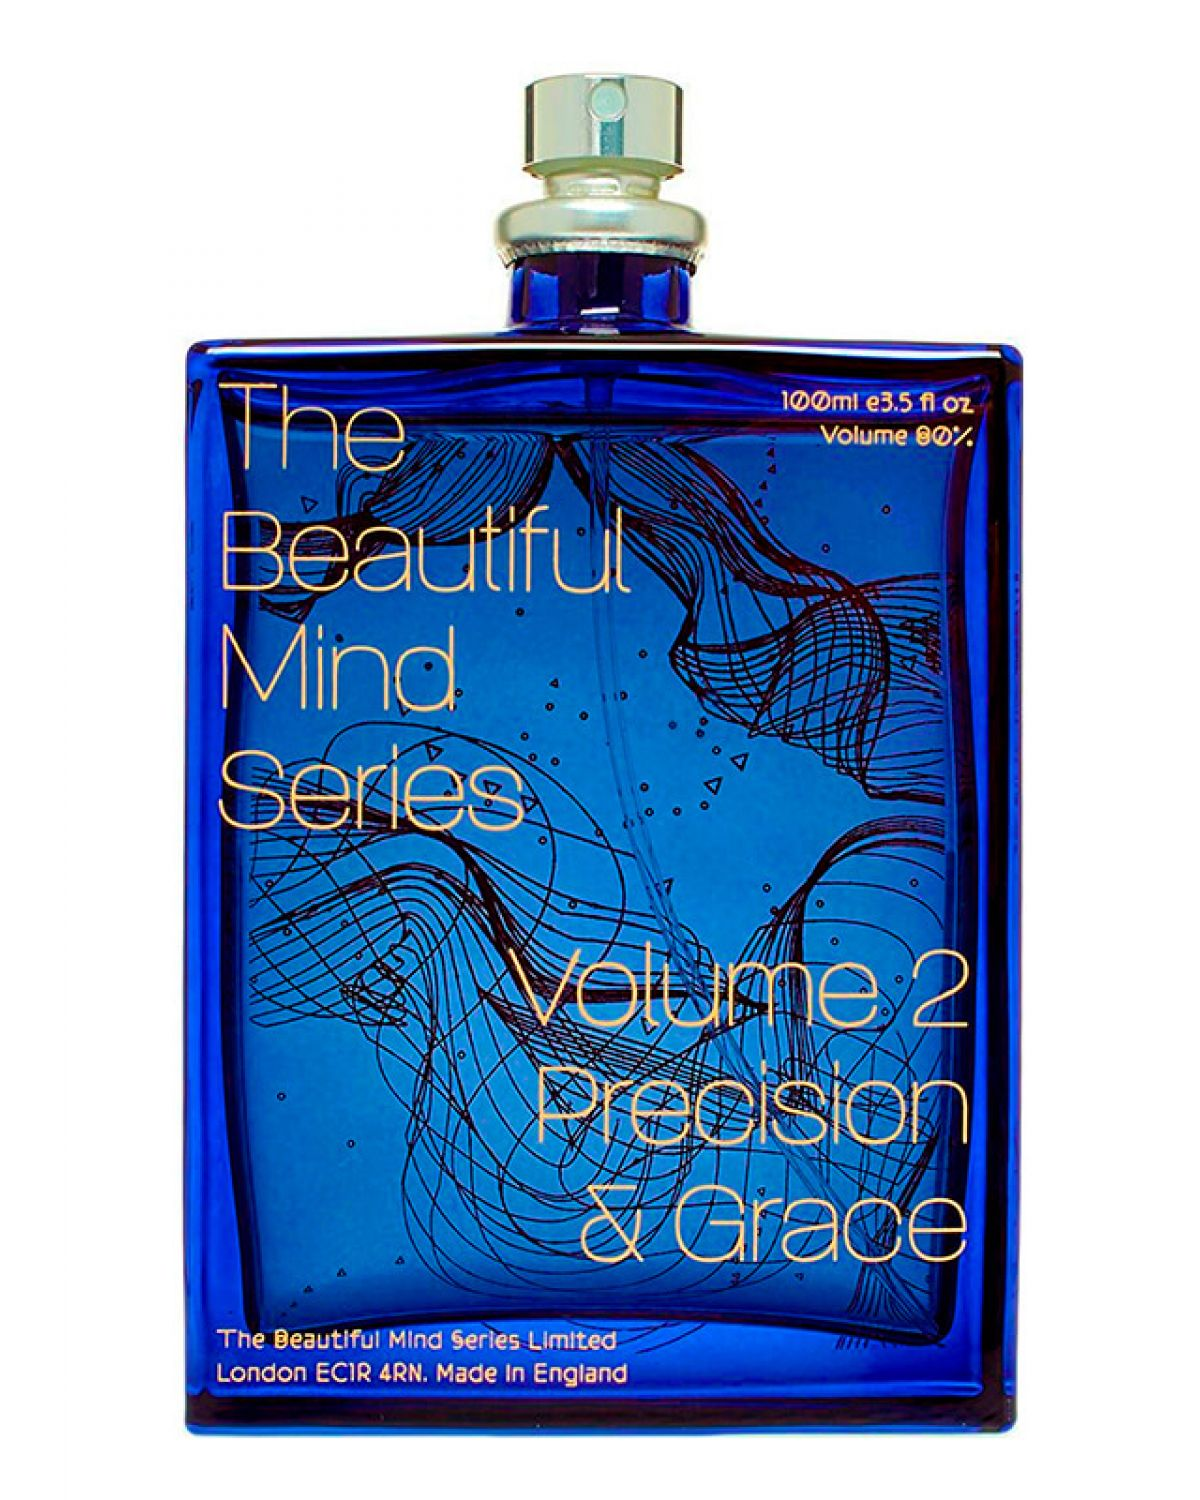 Escentric Molecules Precision & Grace от The Beautiful Mind Series